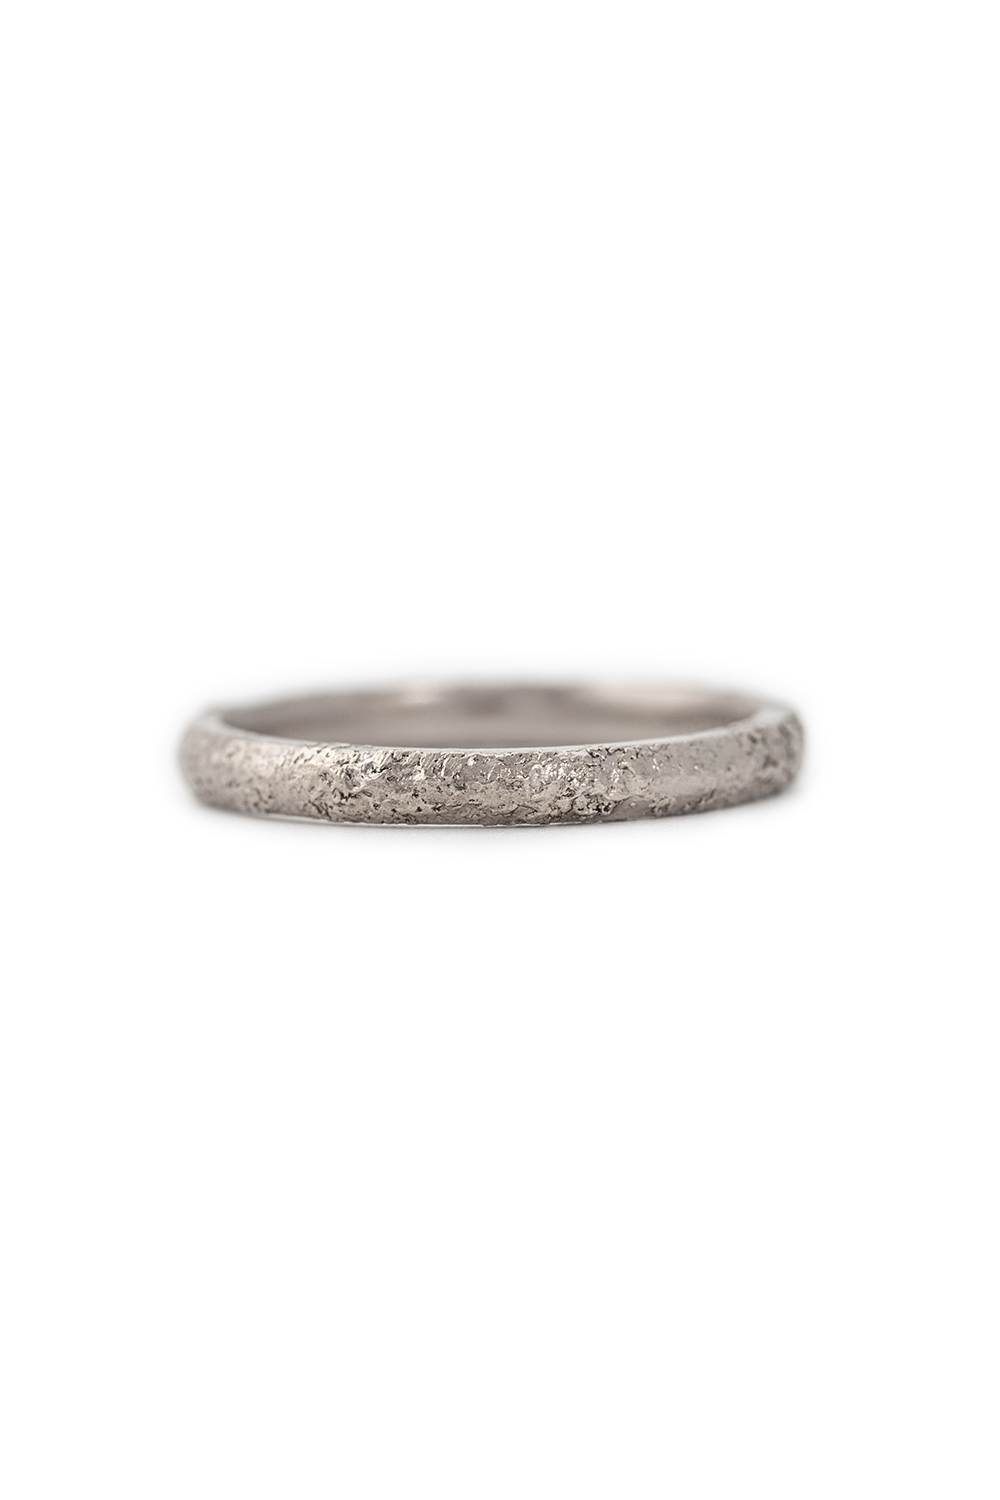 Gold dust fused ring in white gold